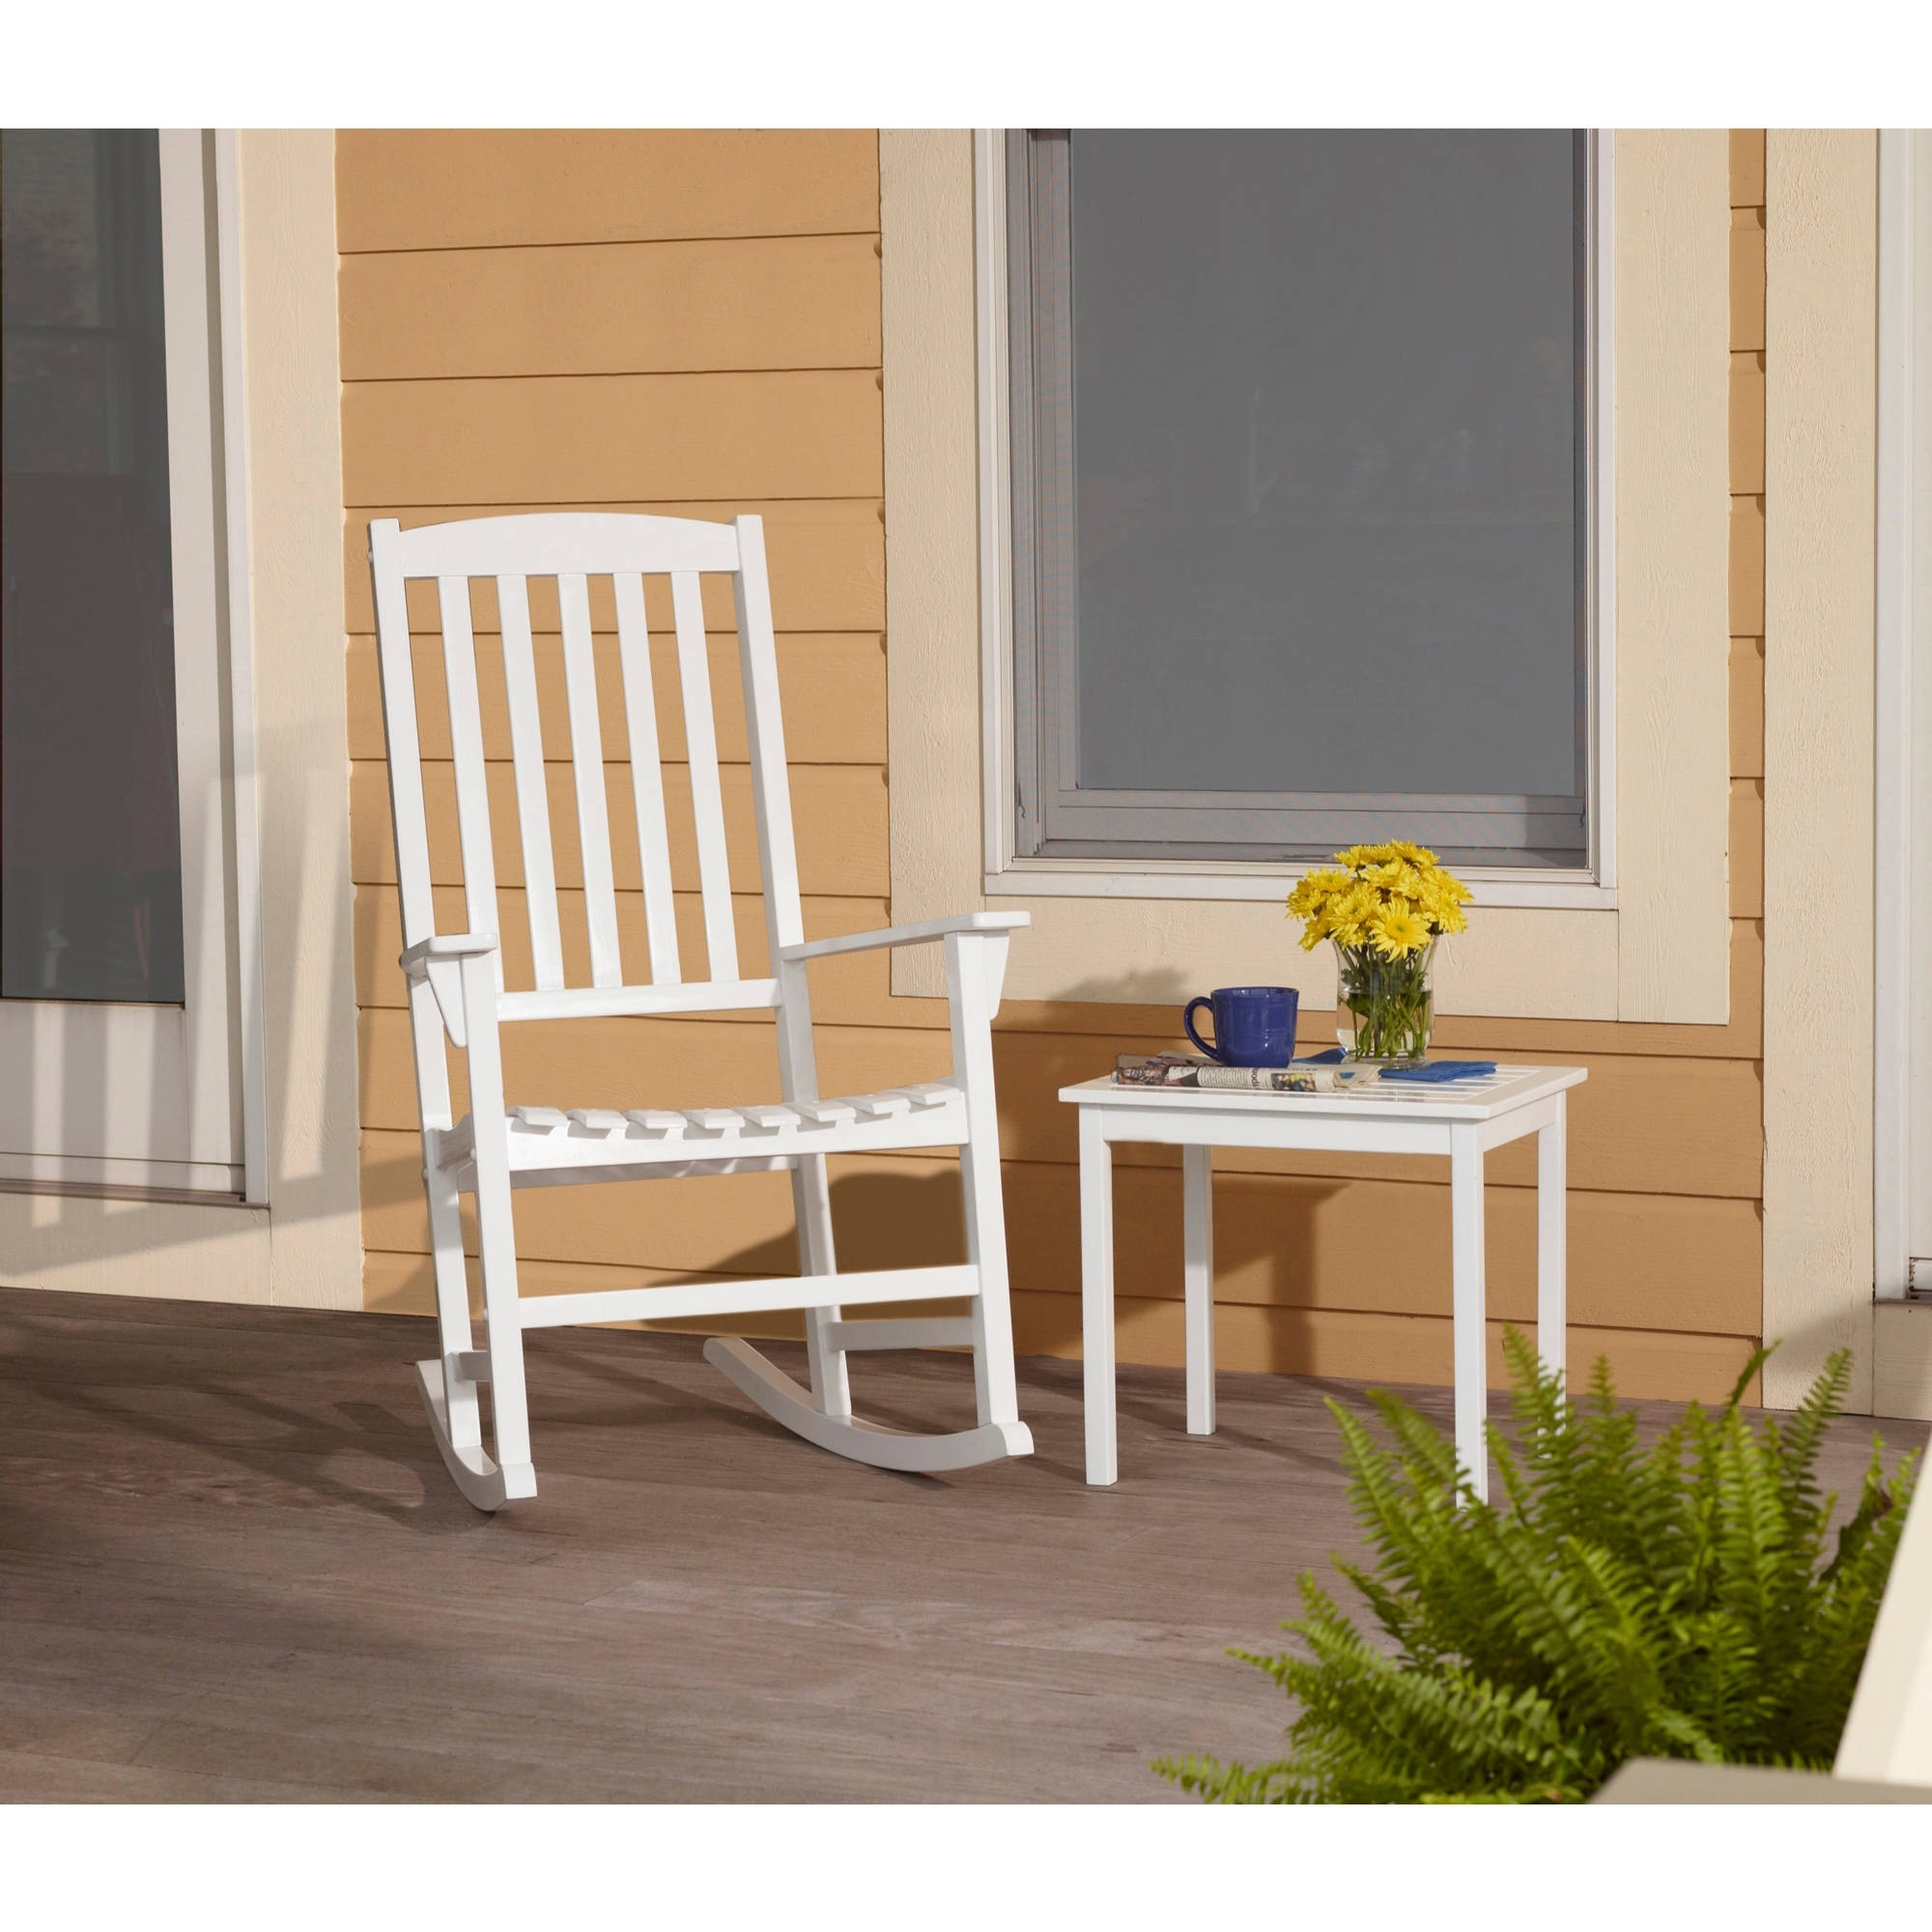 Mainstays Outdoor Rocking Chair, White – Walmart Intended For Preferred Outdoor Vinyl Rocking Chairs (View 19 of 20)